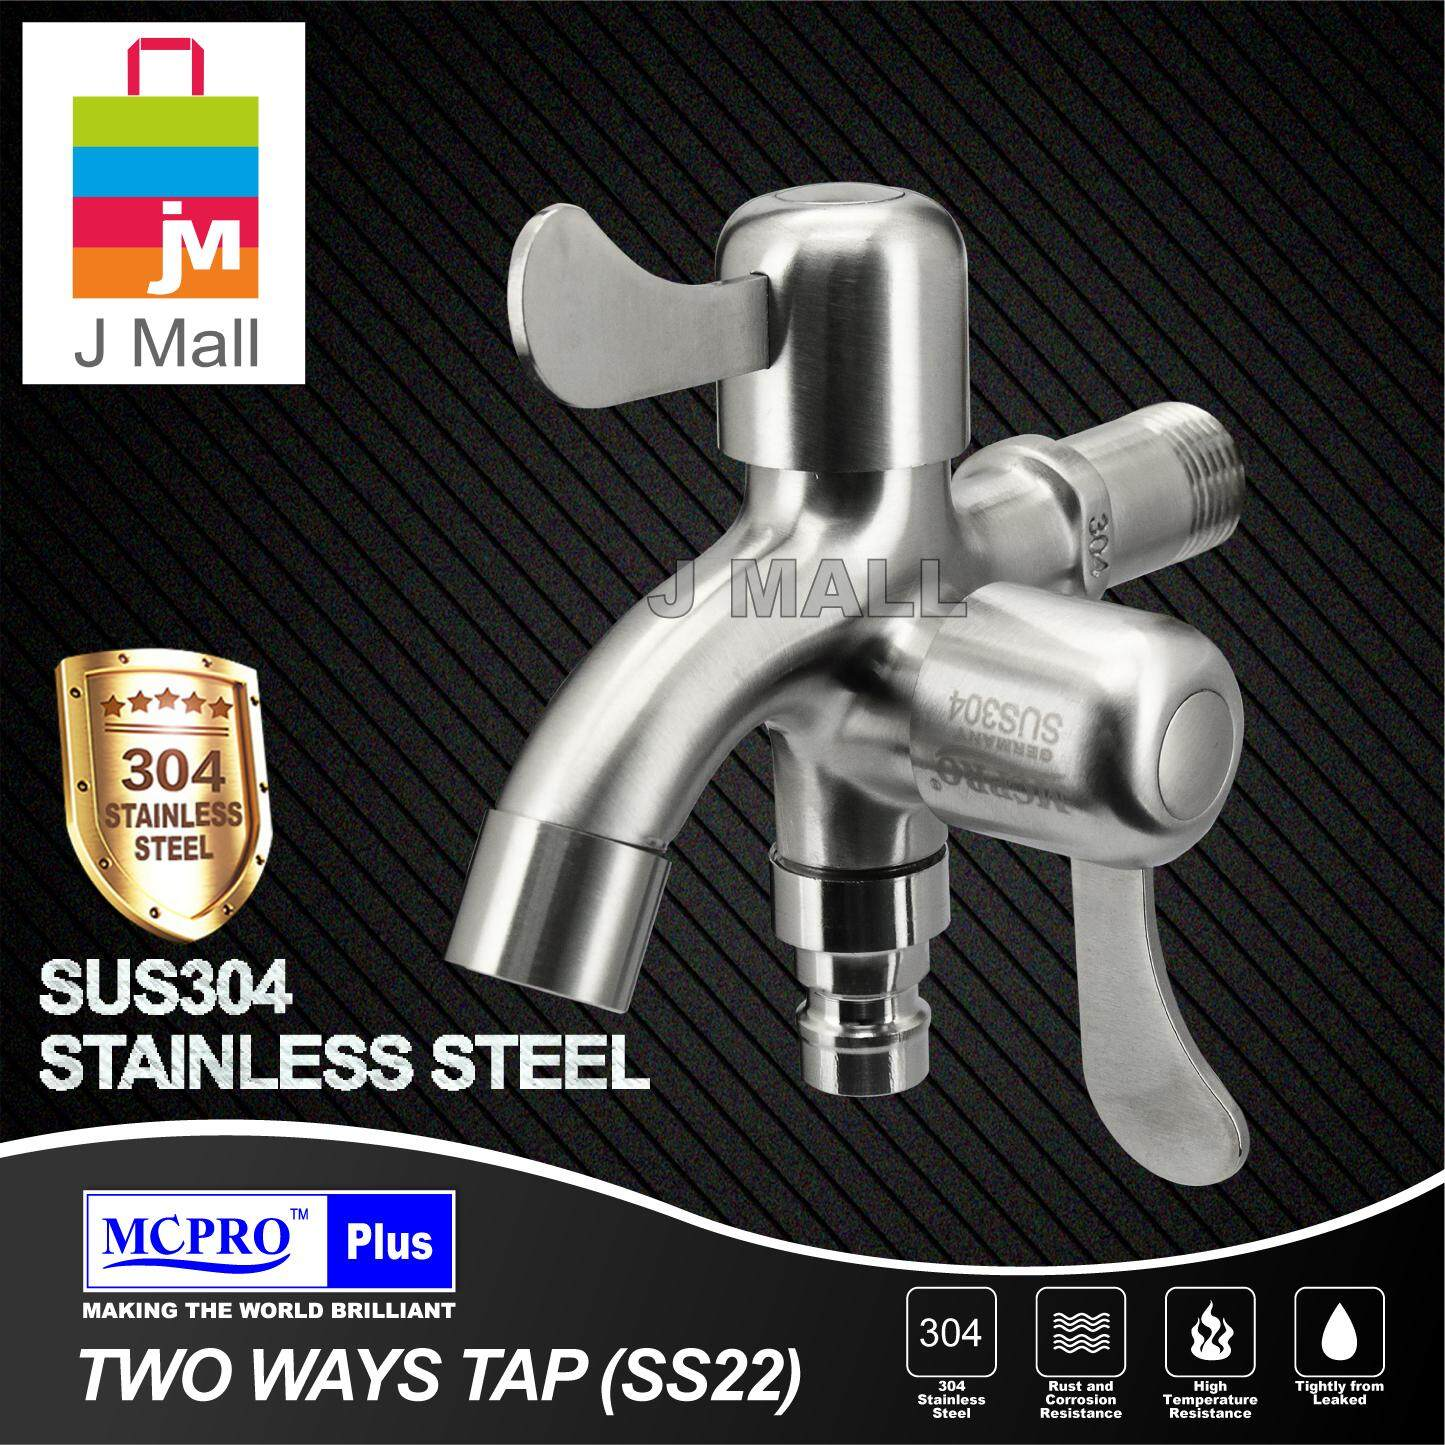 MCPRO Plus Stainless Steel SUS 304 Bathroom/Washing machine Two Way double Wall Faucet Water Sink Tap  (SS22)